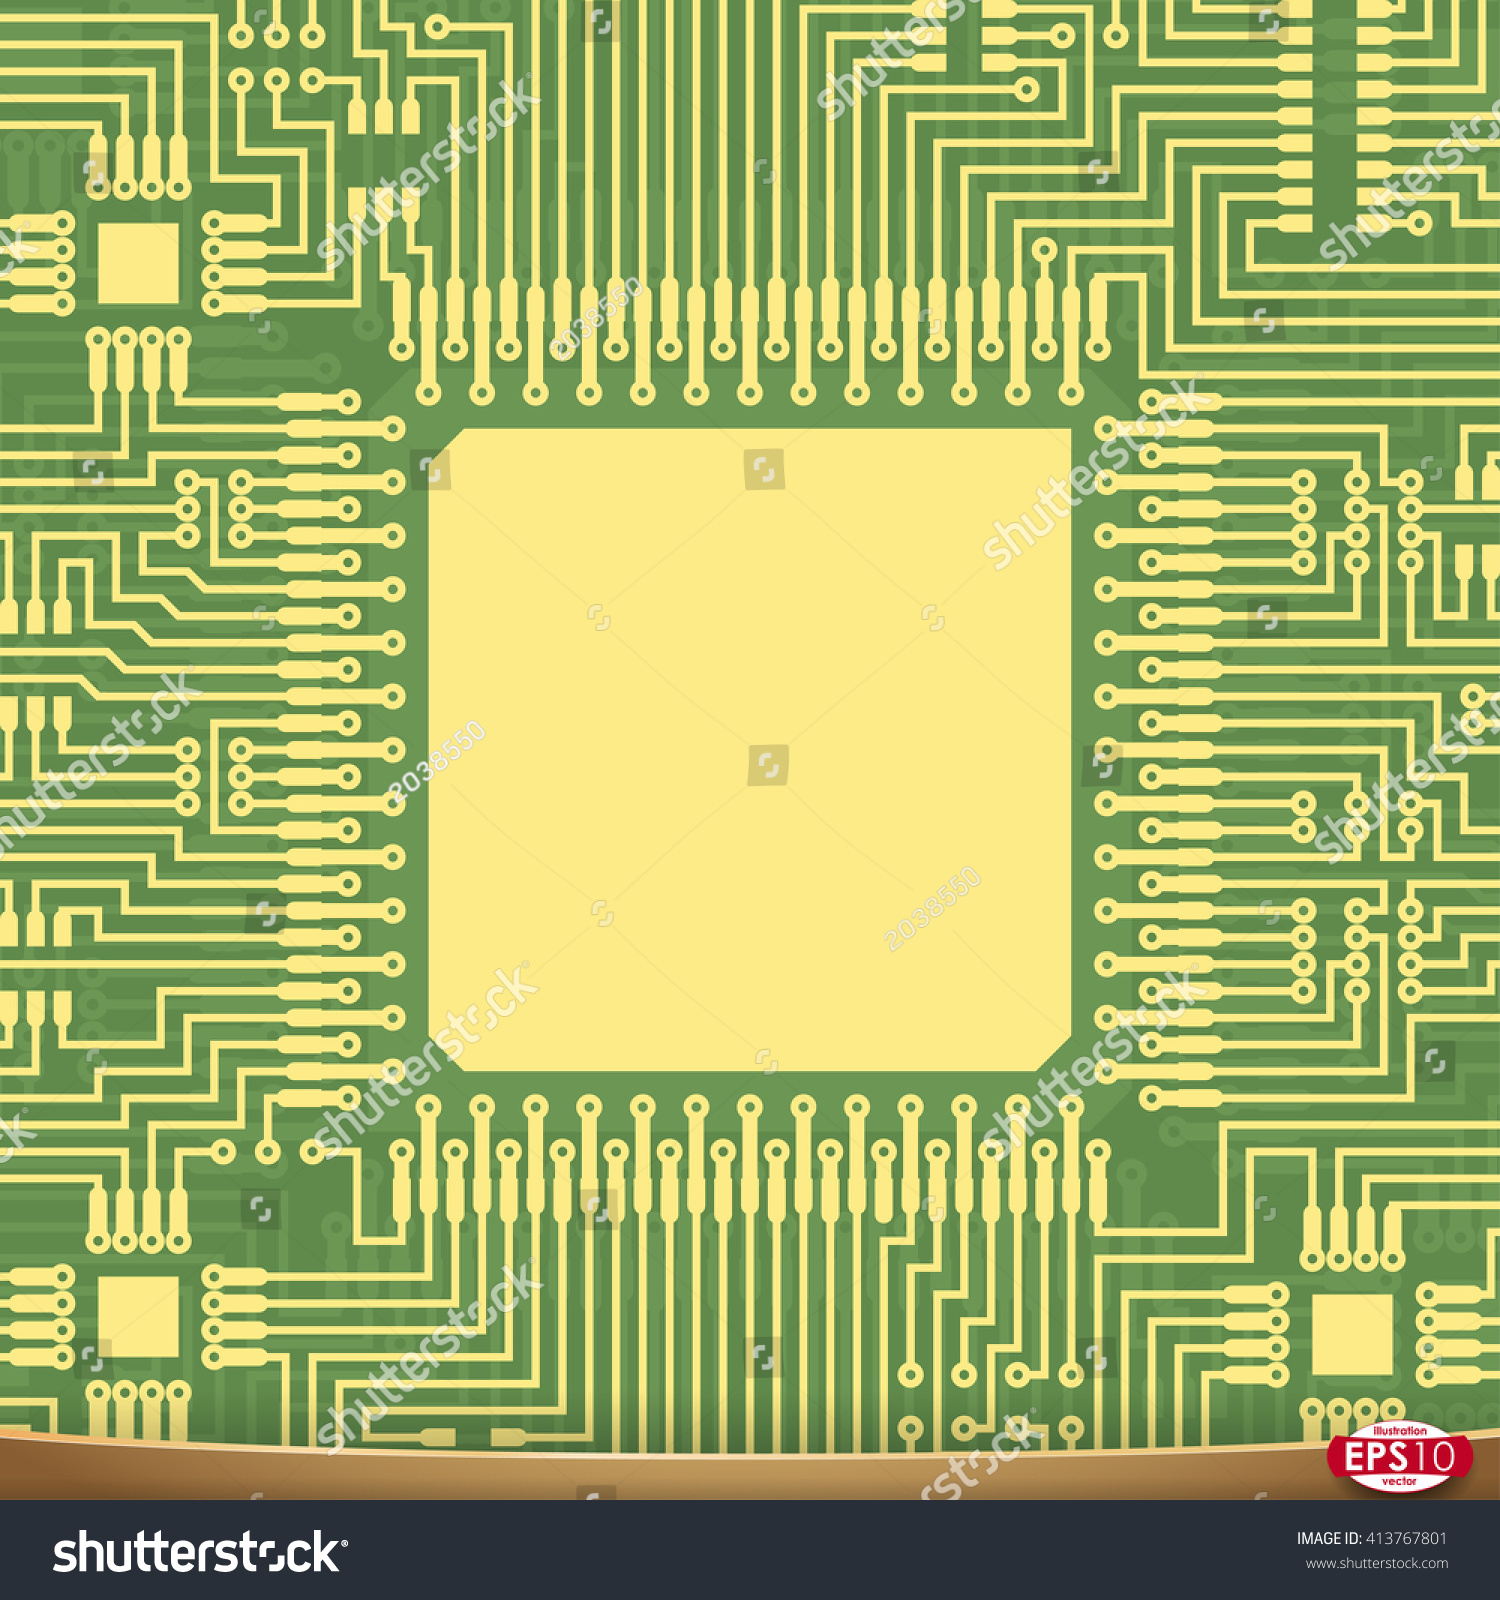 Pcb Wiring Scheme Vector Electrical Background Stock Royalty Motherboard Computer Abstract Tech Equipment